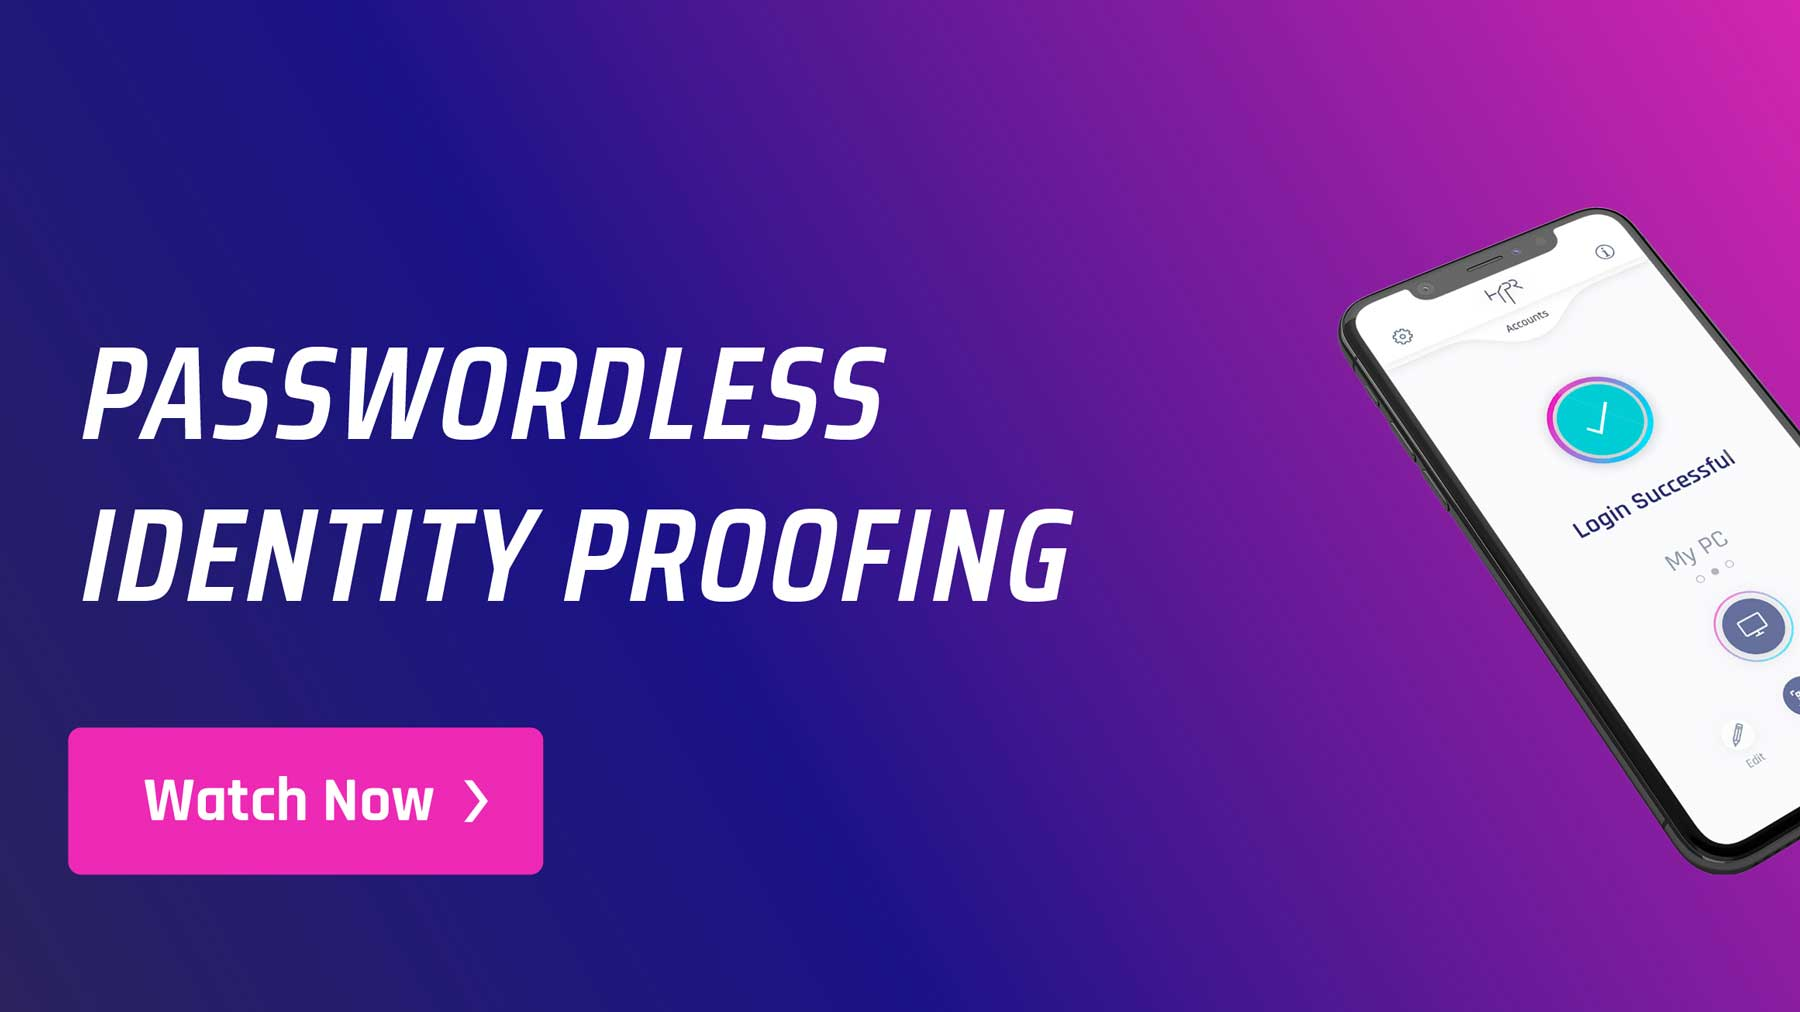 Passwordless Identity Proofing Featured